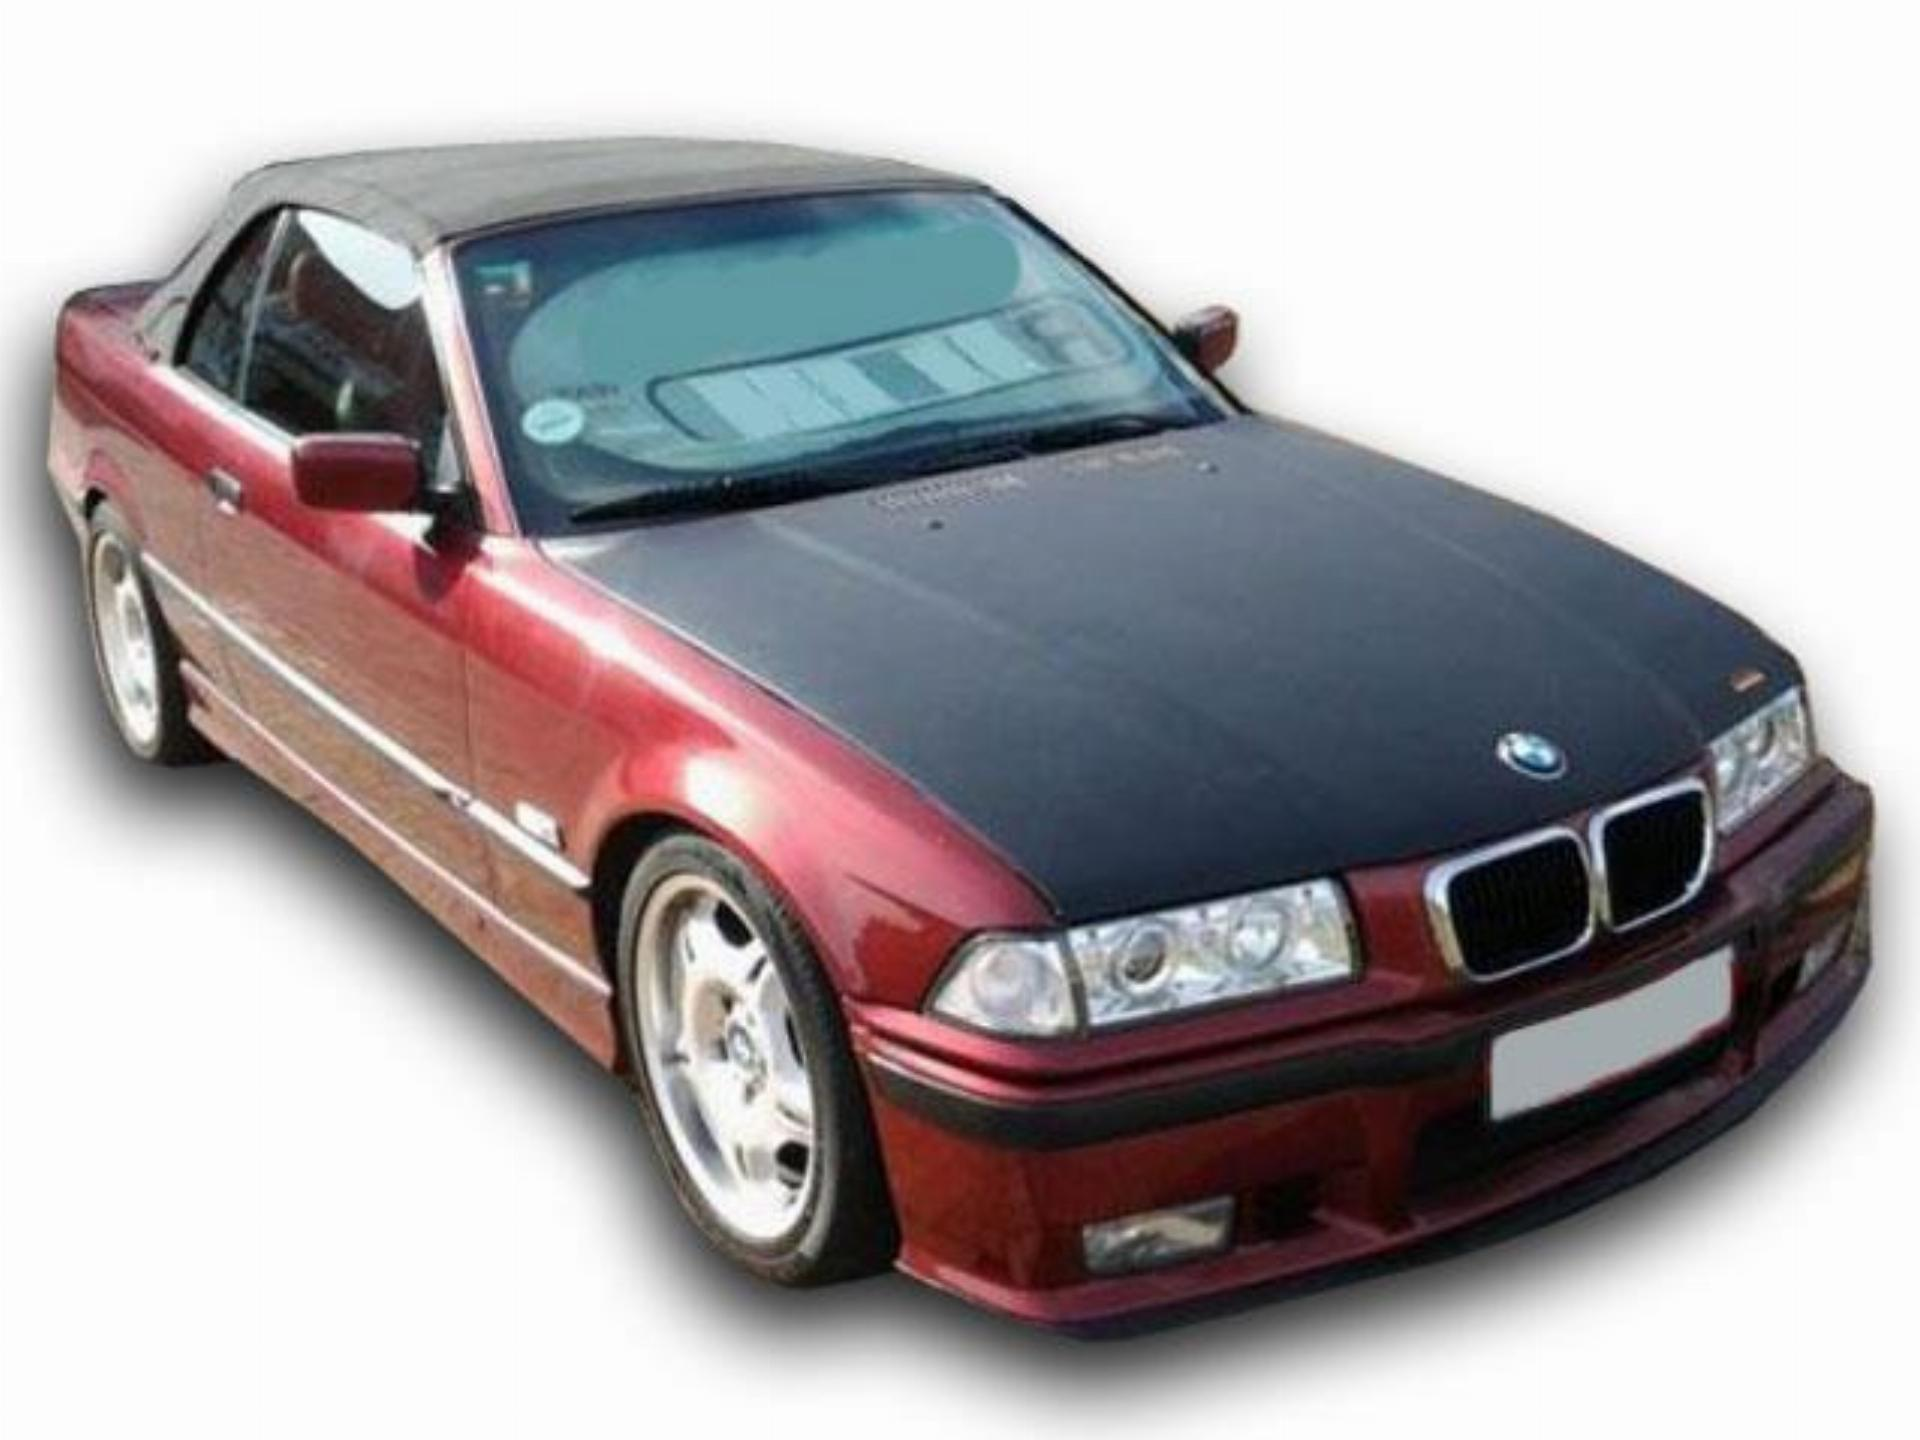 Used BMW 3 Series 328I E36 1995 on auction - PV1003320